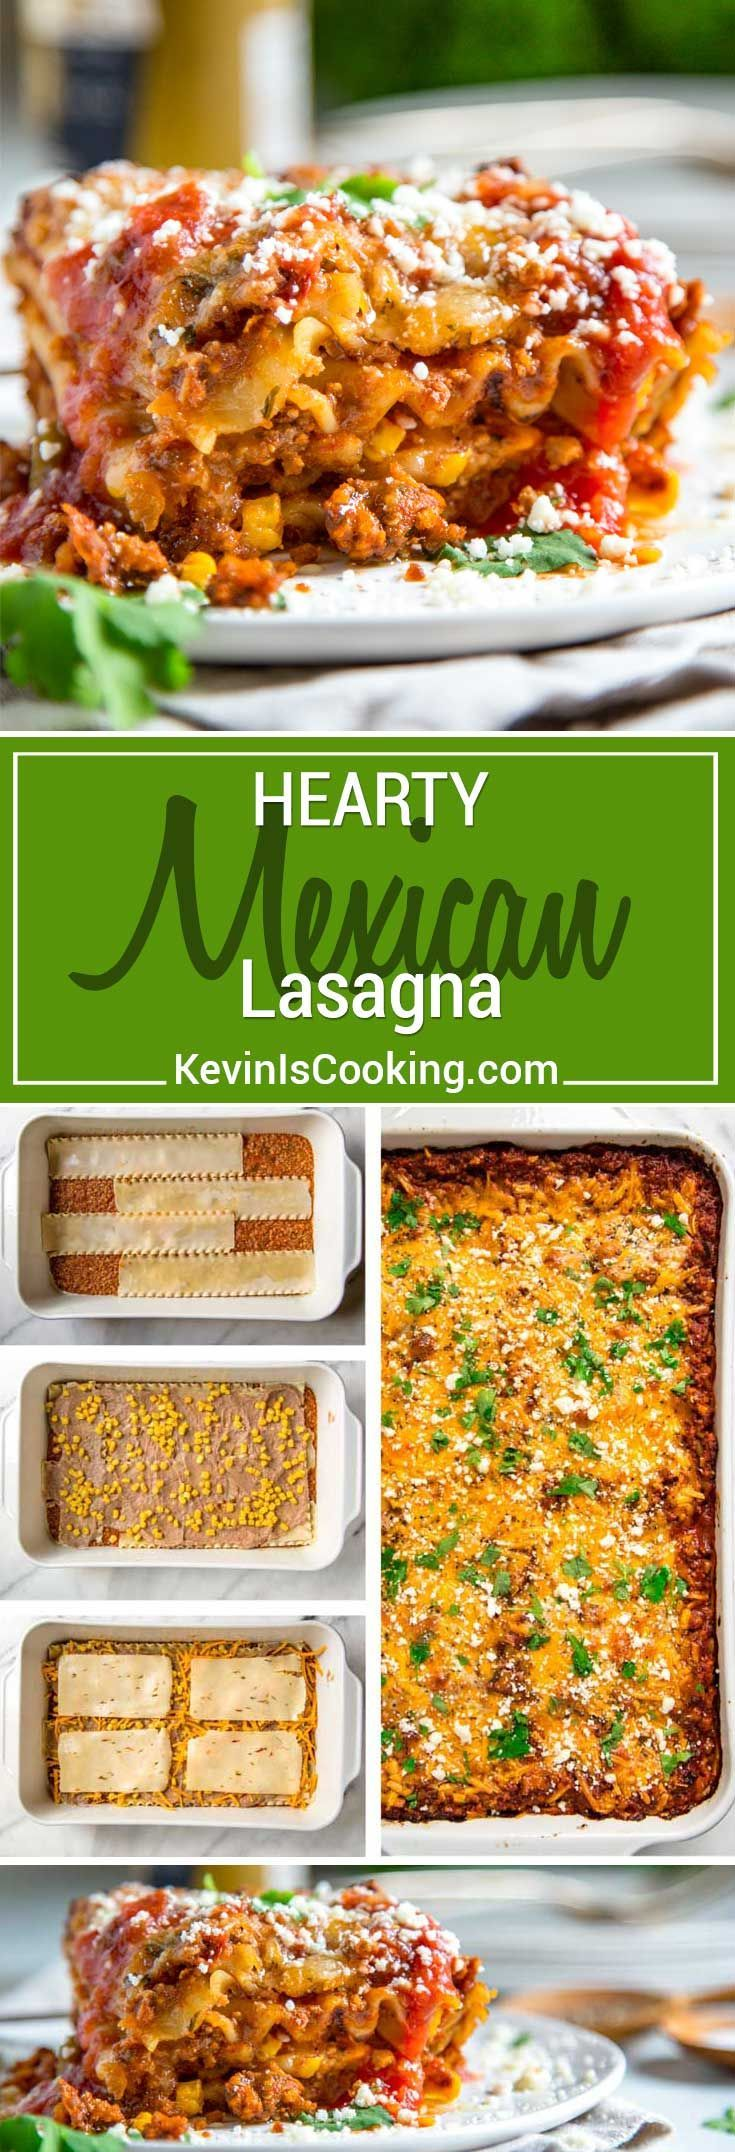 the Tex Mex route on this Hearty Mexican Lasagna, I kept with traditional lasagna noodles and went south of the border for spices. Refried beans, corn, two cheese with a beef and pork salsa meat sauce make this a crowd pleaser!